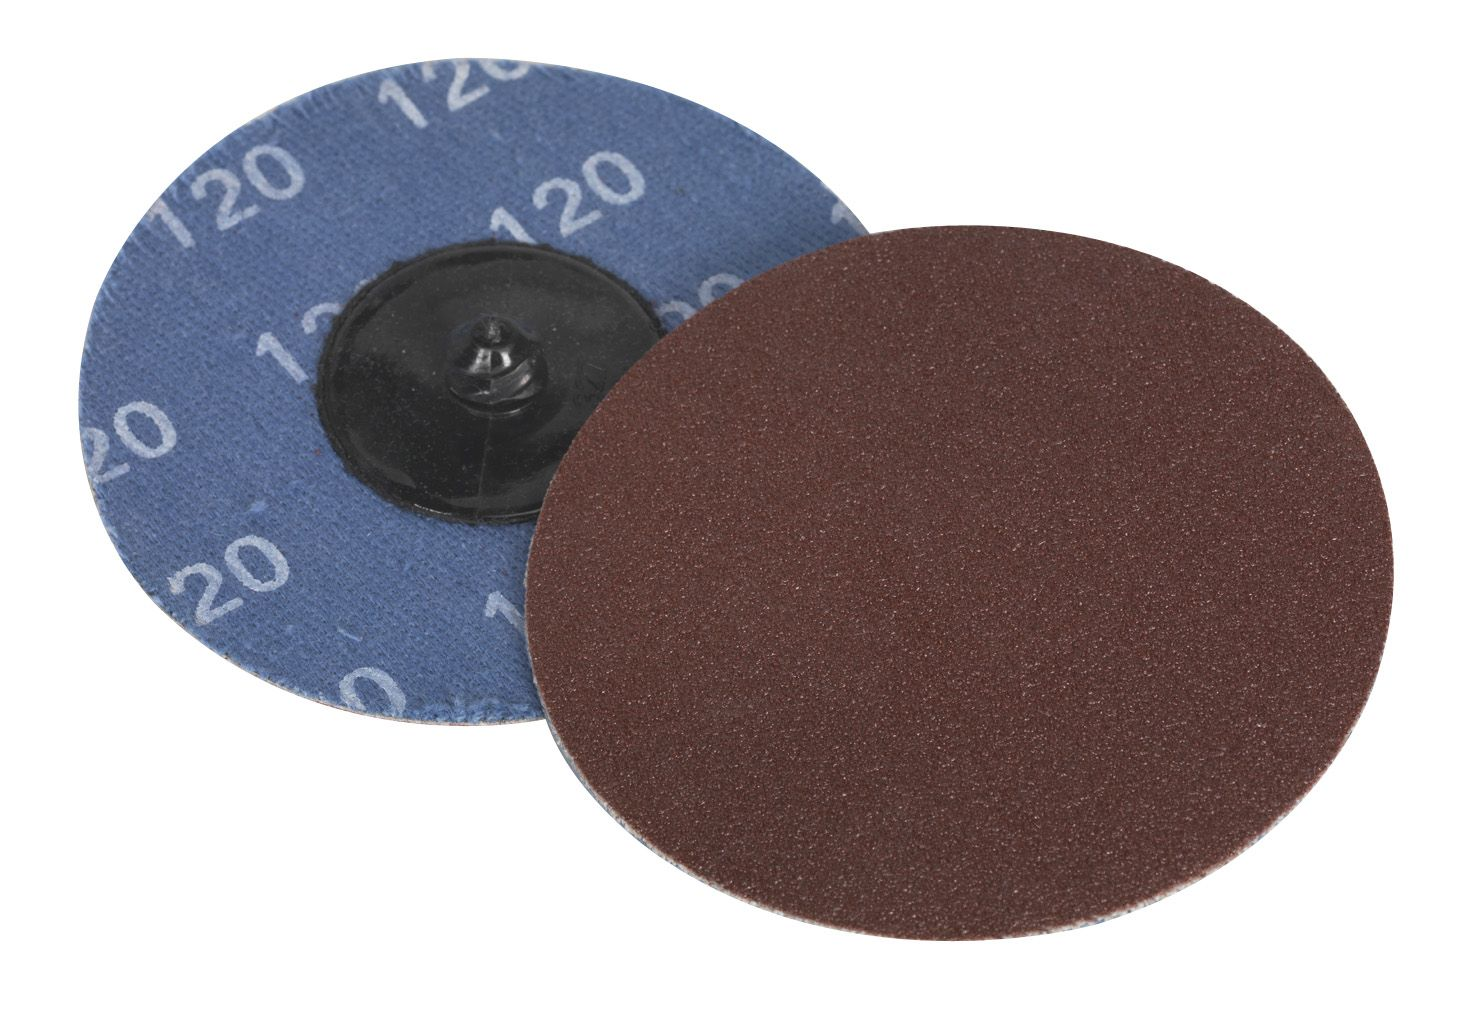 Sealey 75mm Quick Change Sanding Discs Packs Of 10